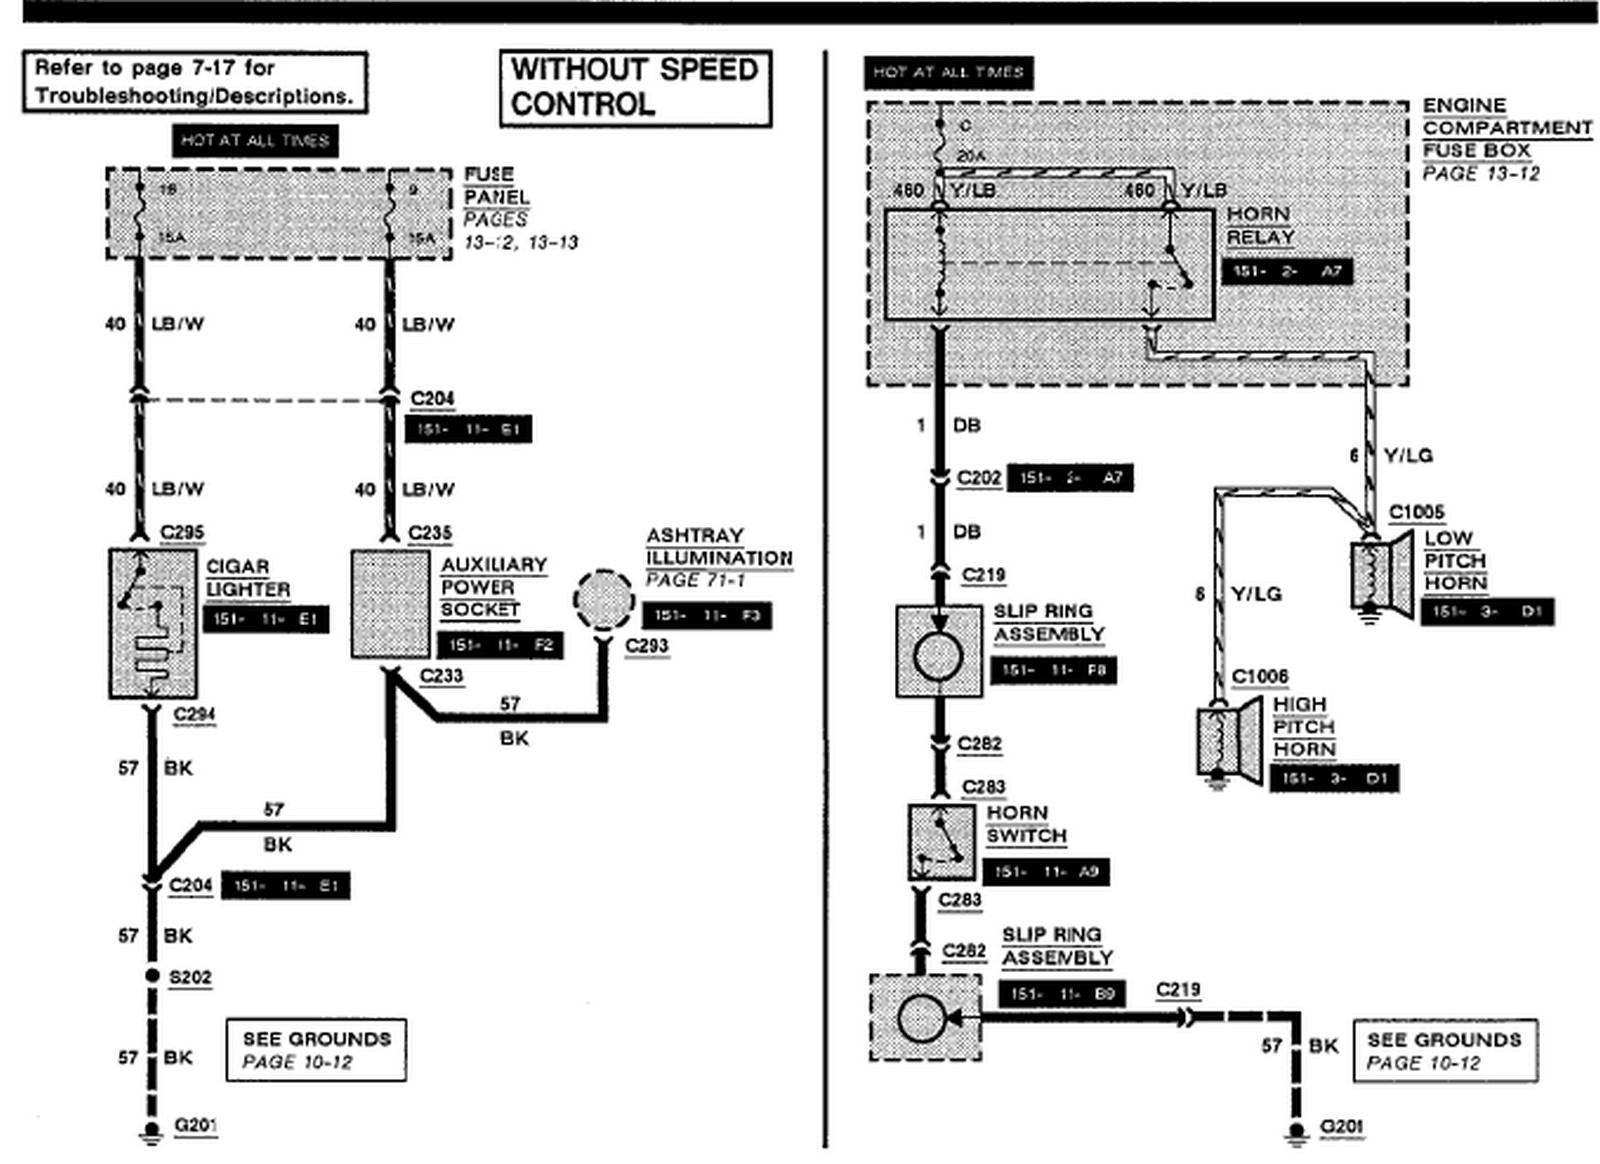 2004 Ford Starter Wiring Diagram Diagrams 1997 Expedition F 150 Transmission 43 Solenoid